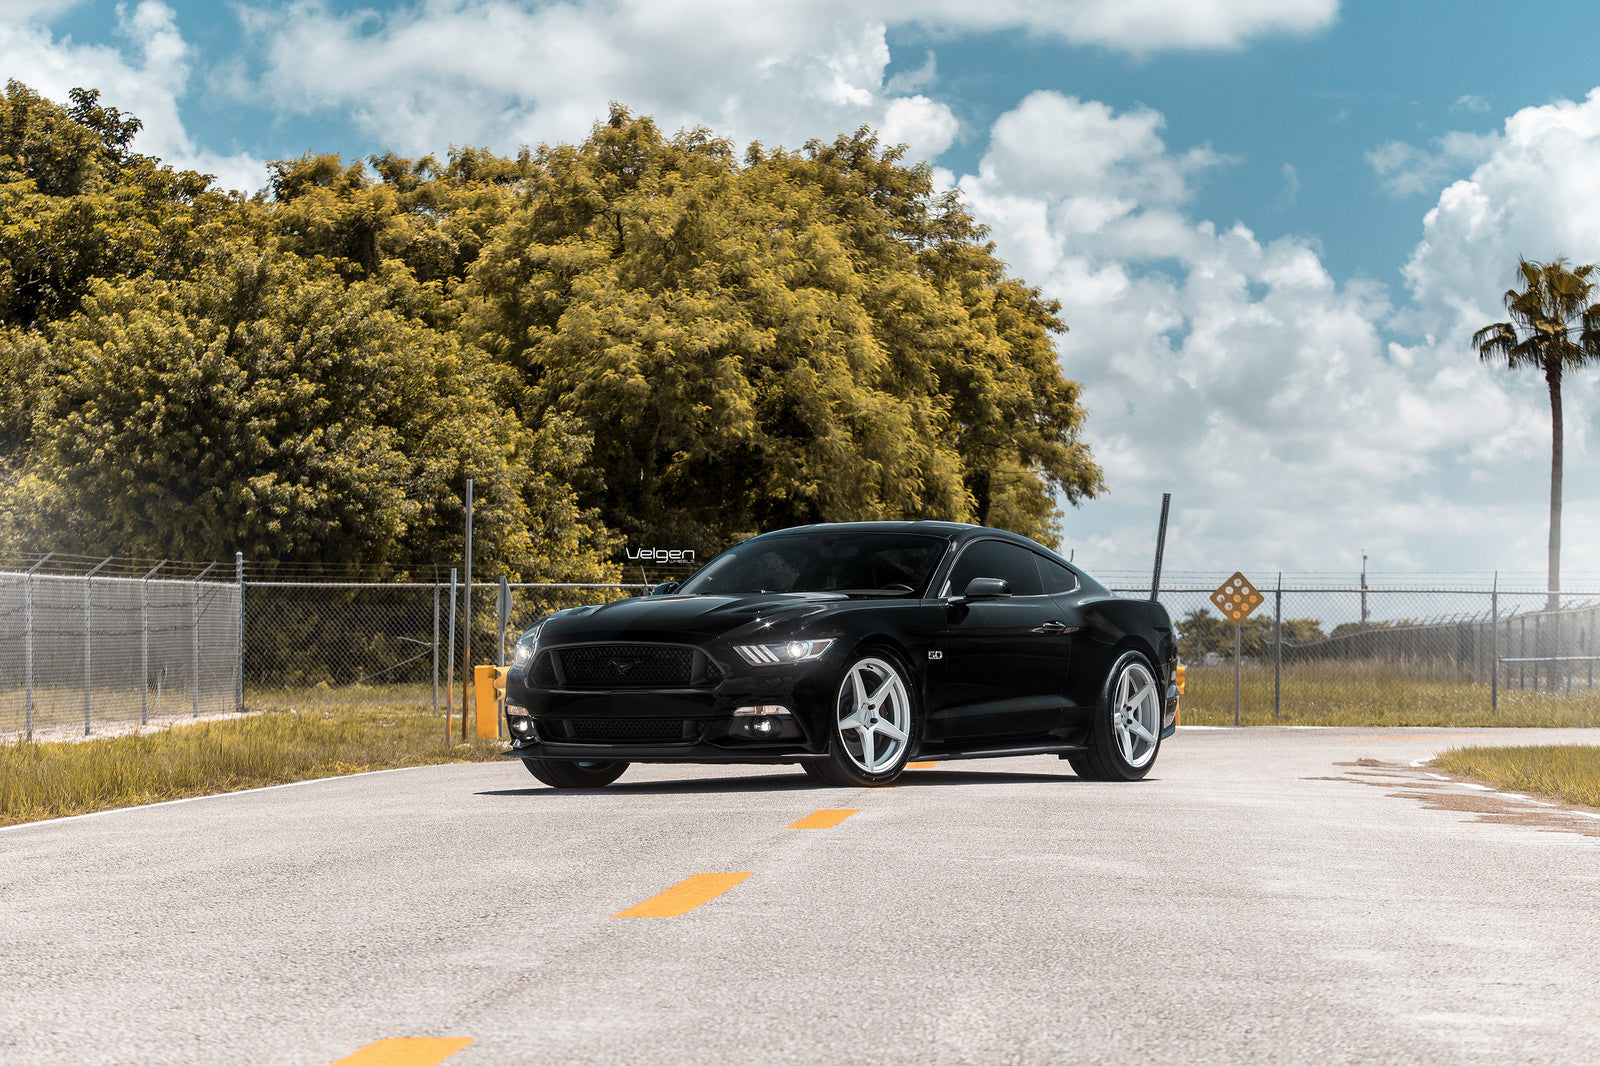 black-mustang-classic5-silver-1